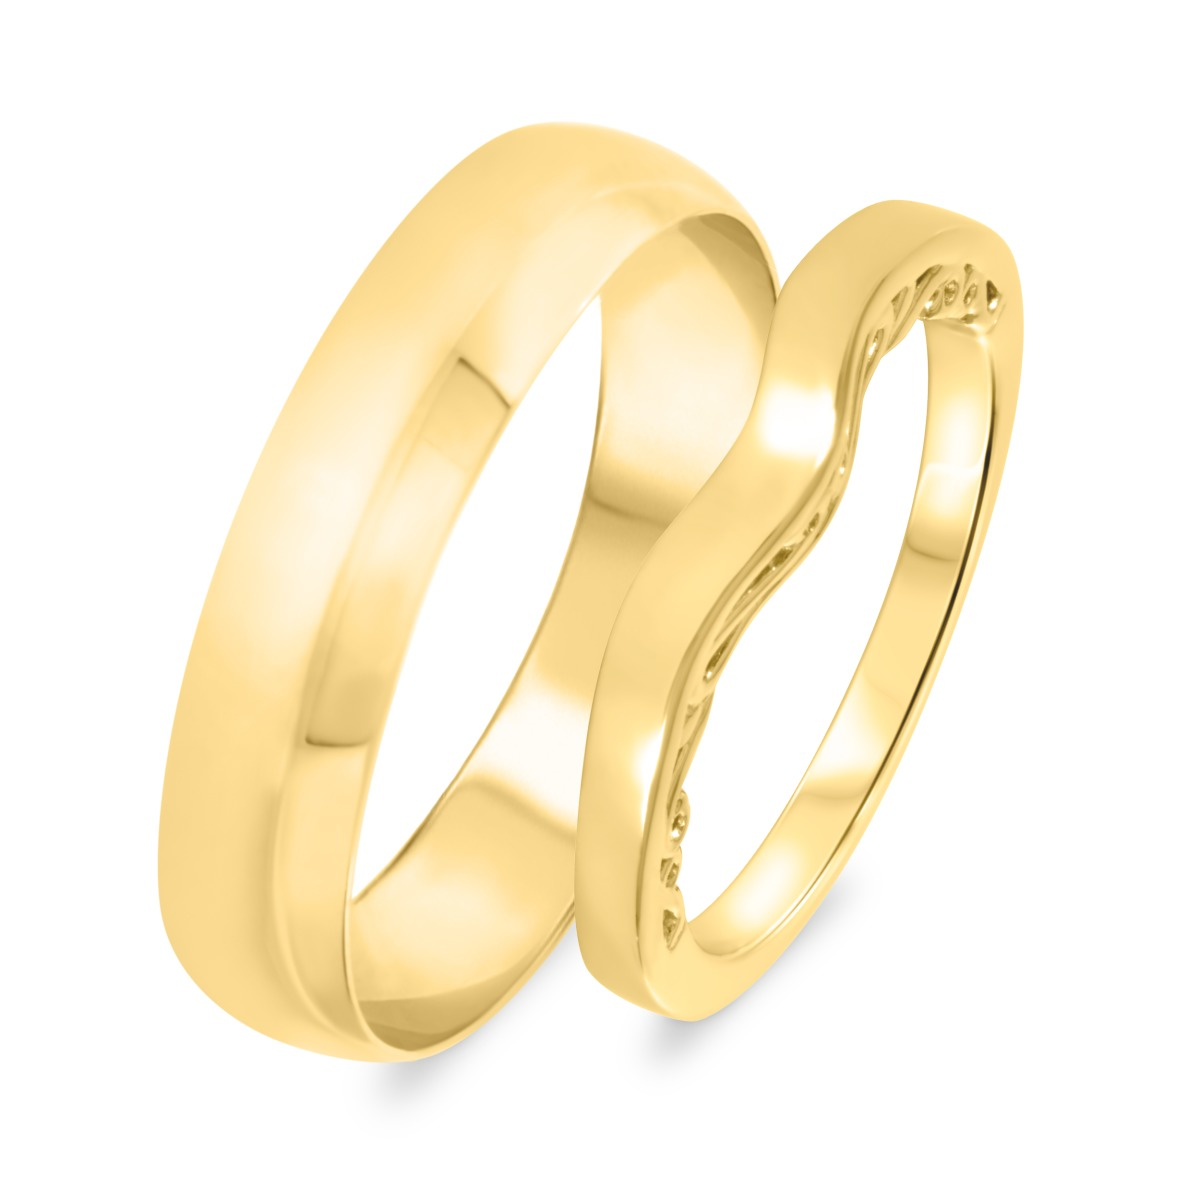 Wedding Band Set 10K Yellow Gold